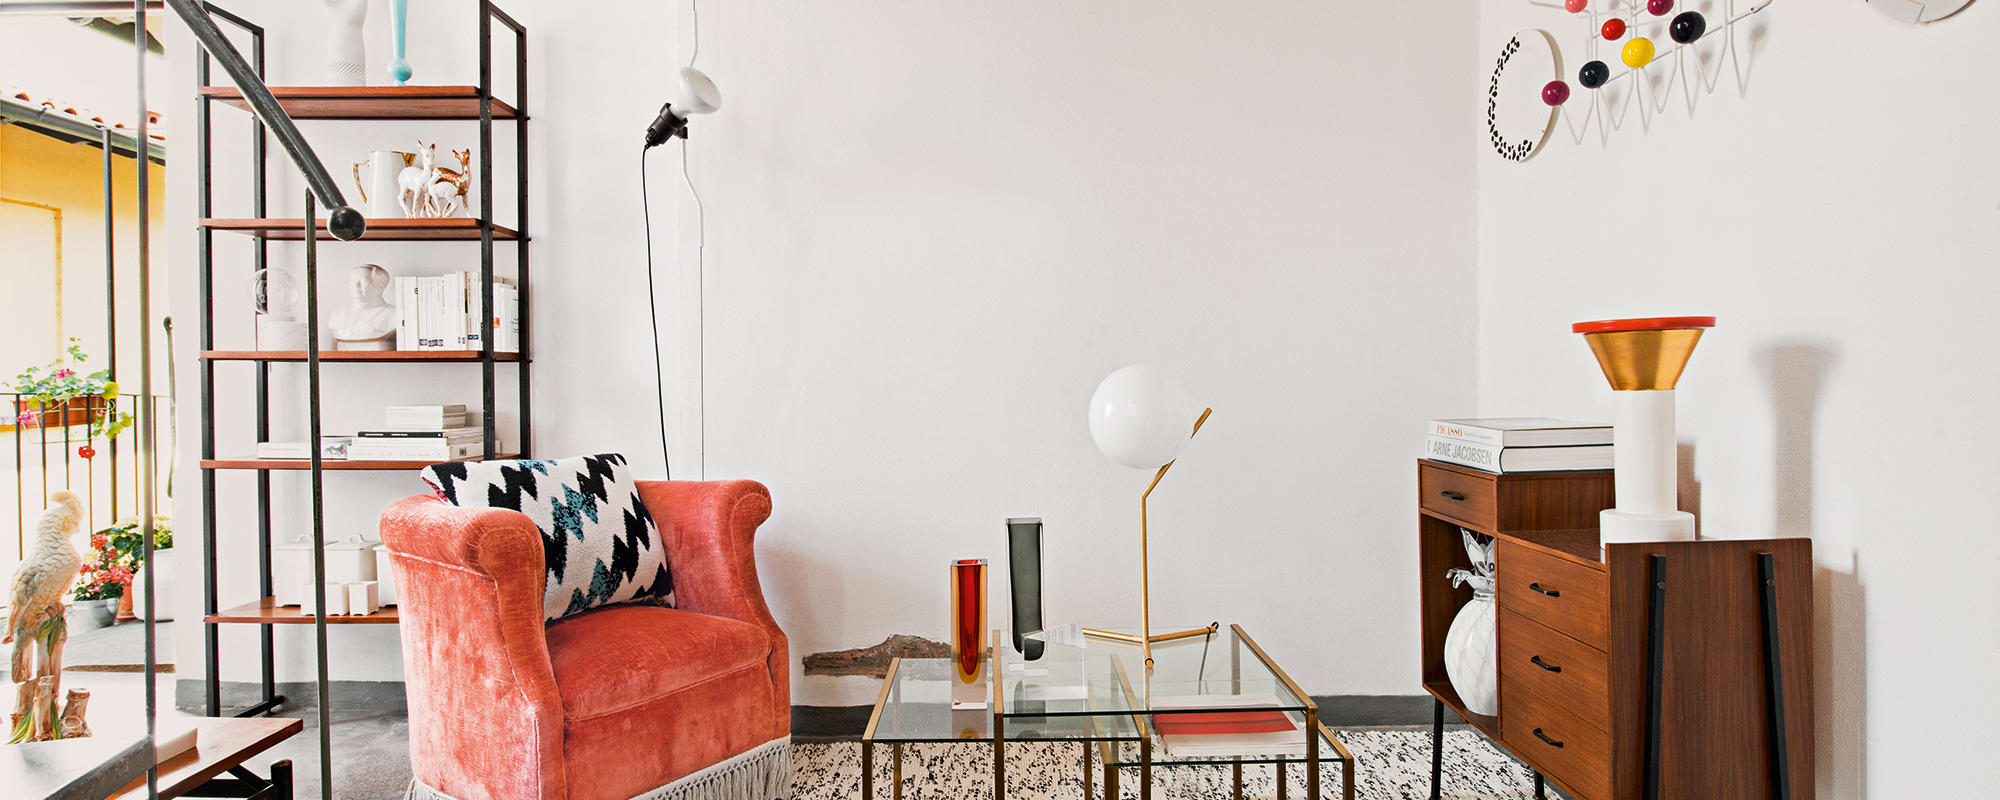 Mailand Apartment Benedetto Fasciana, Eames Hang it all, Lampe Anastassiades für Flos, Kenzo Home Kissen